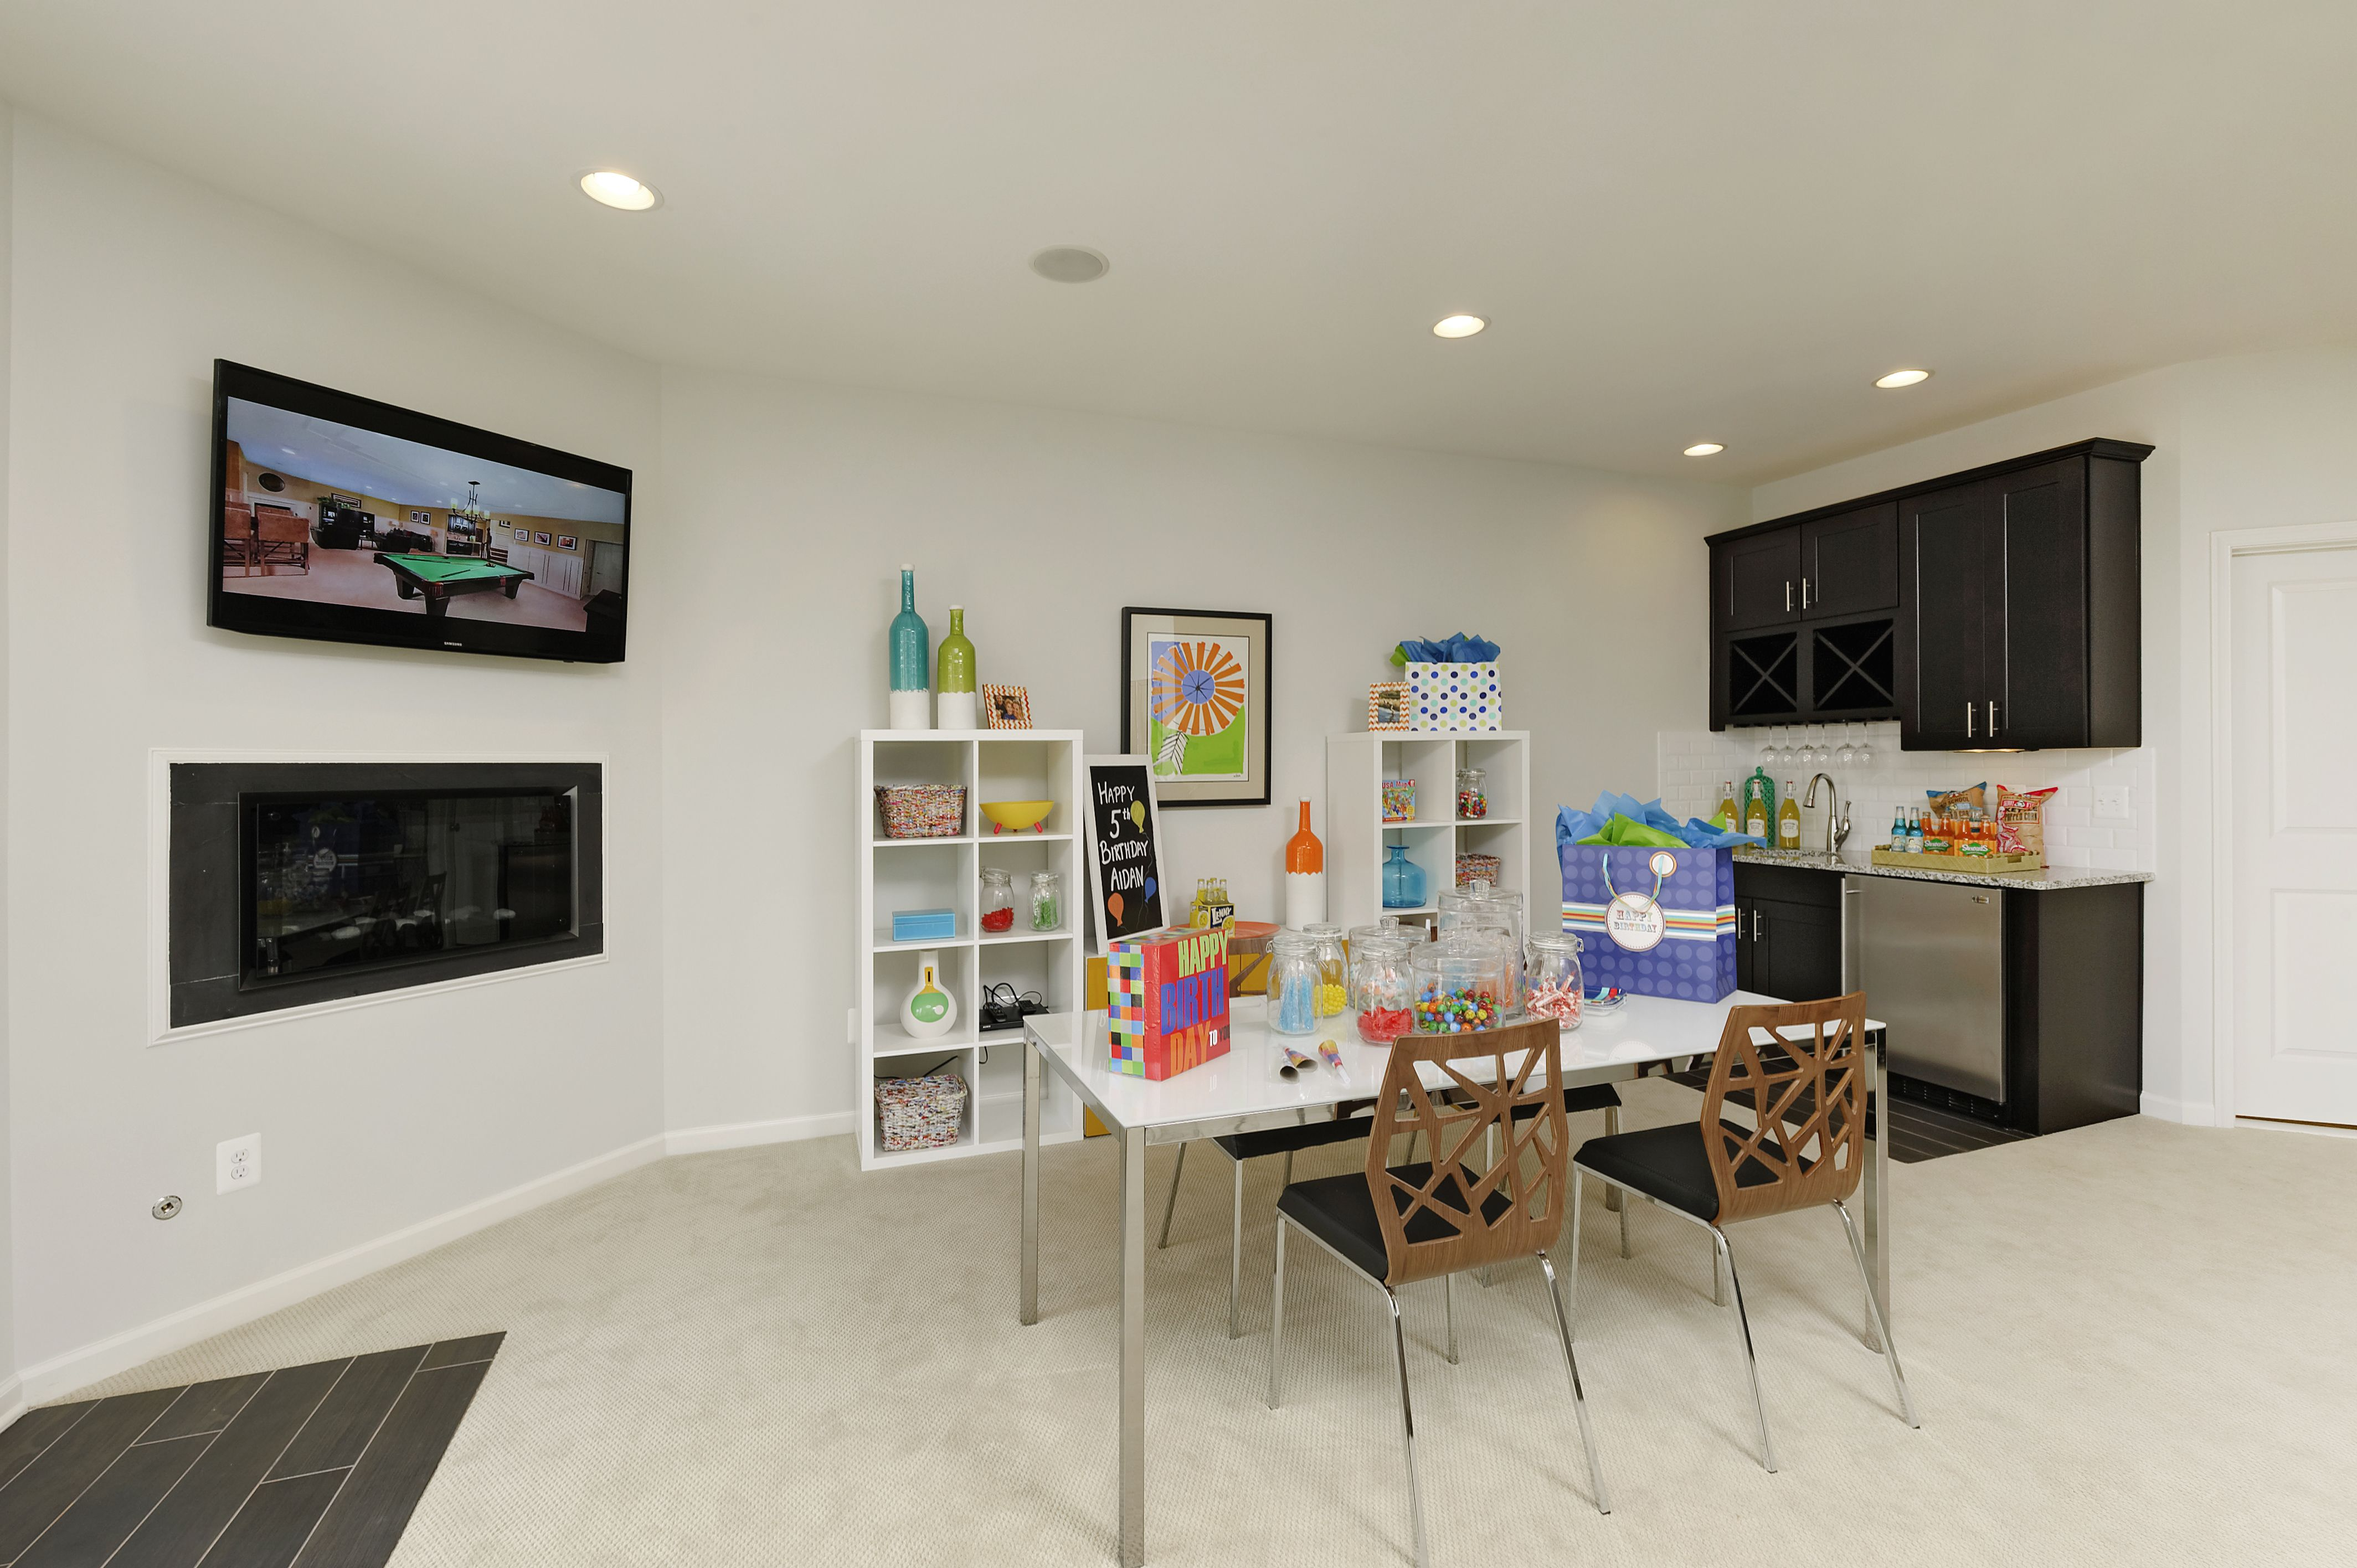 Plan h th house of turquoise home storage house